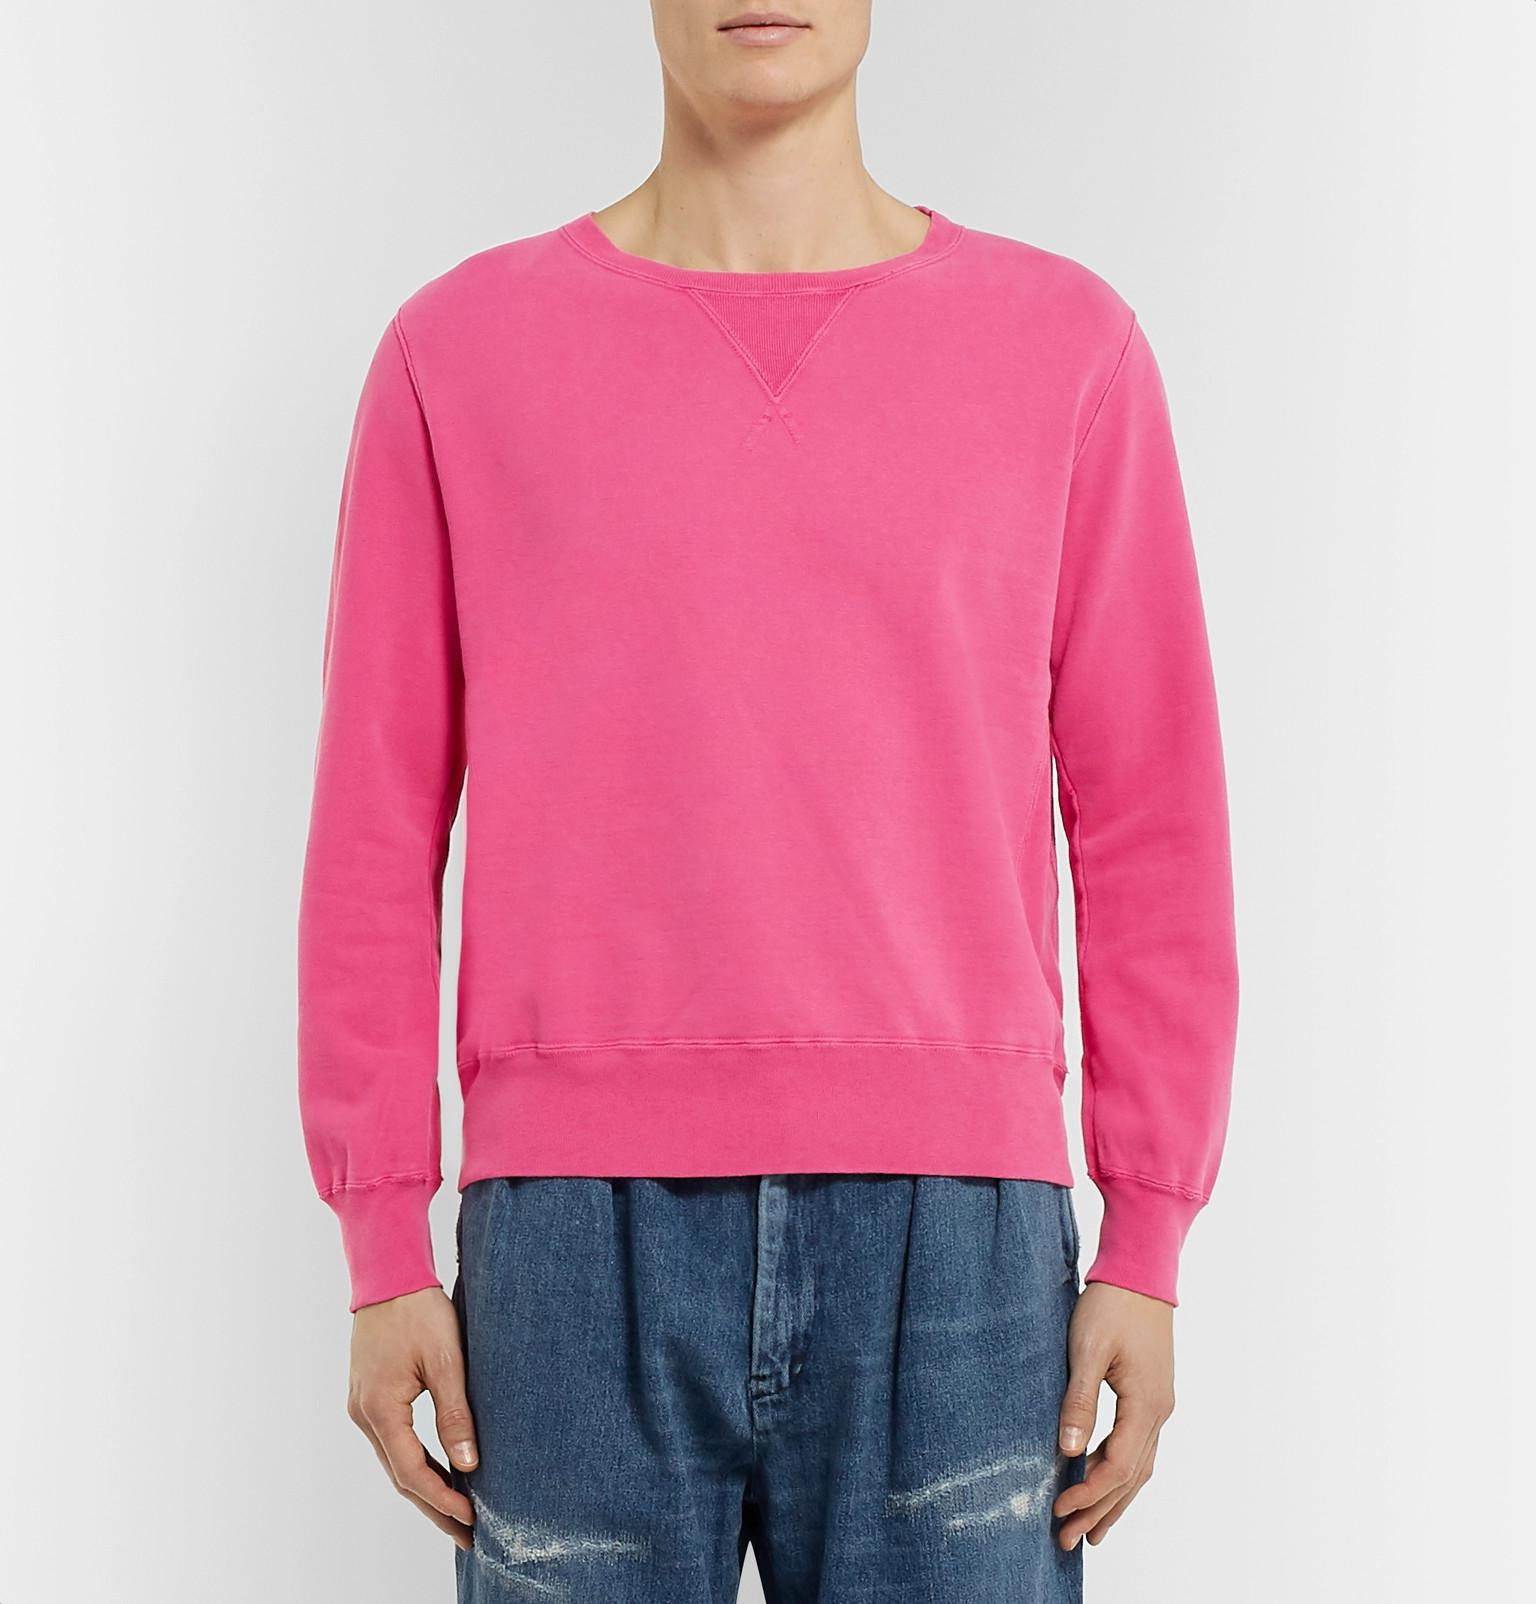 Distressed Sweatshirt Fullscreen Jersey Men View Loopback Pink Remi Cotton Lyst Relief For aYxFCqwE